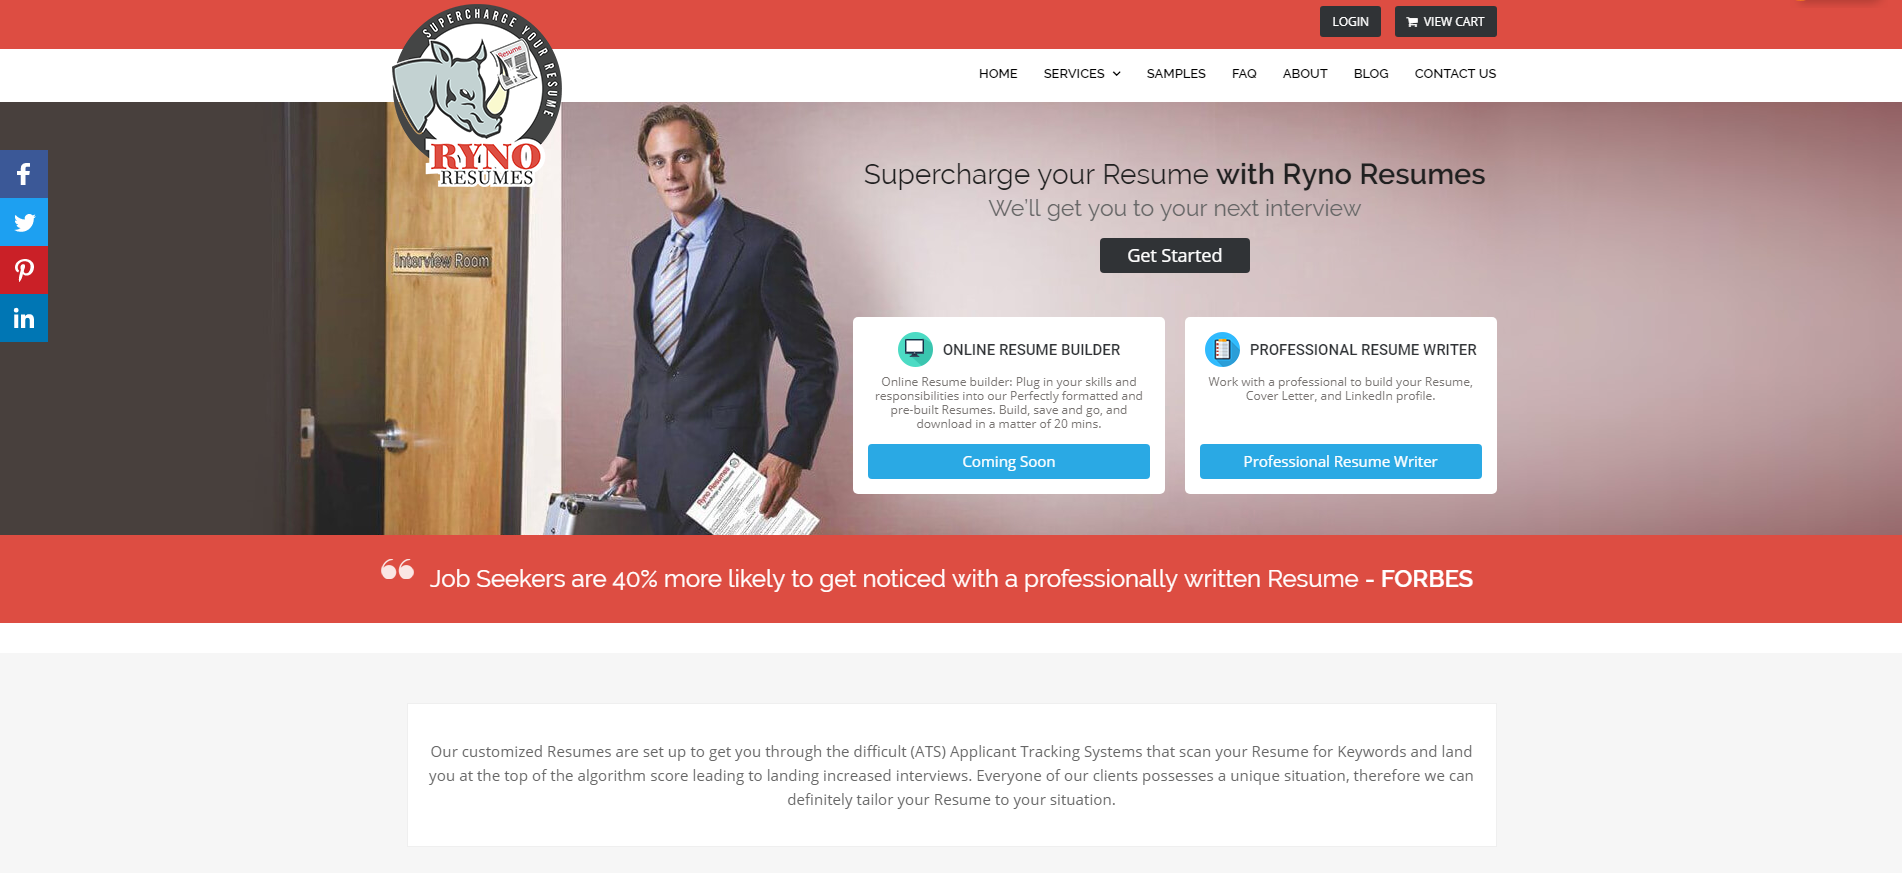 10 Best Marketing Resume Writing Services: Ryno Resumes Hero Section